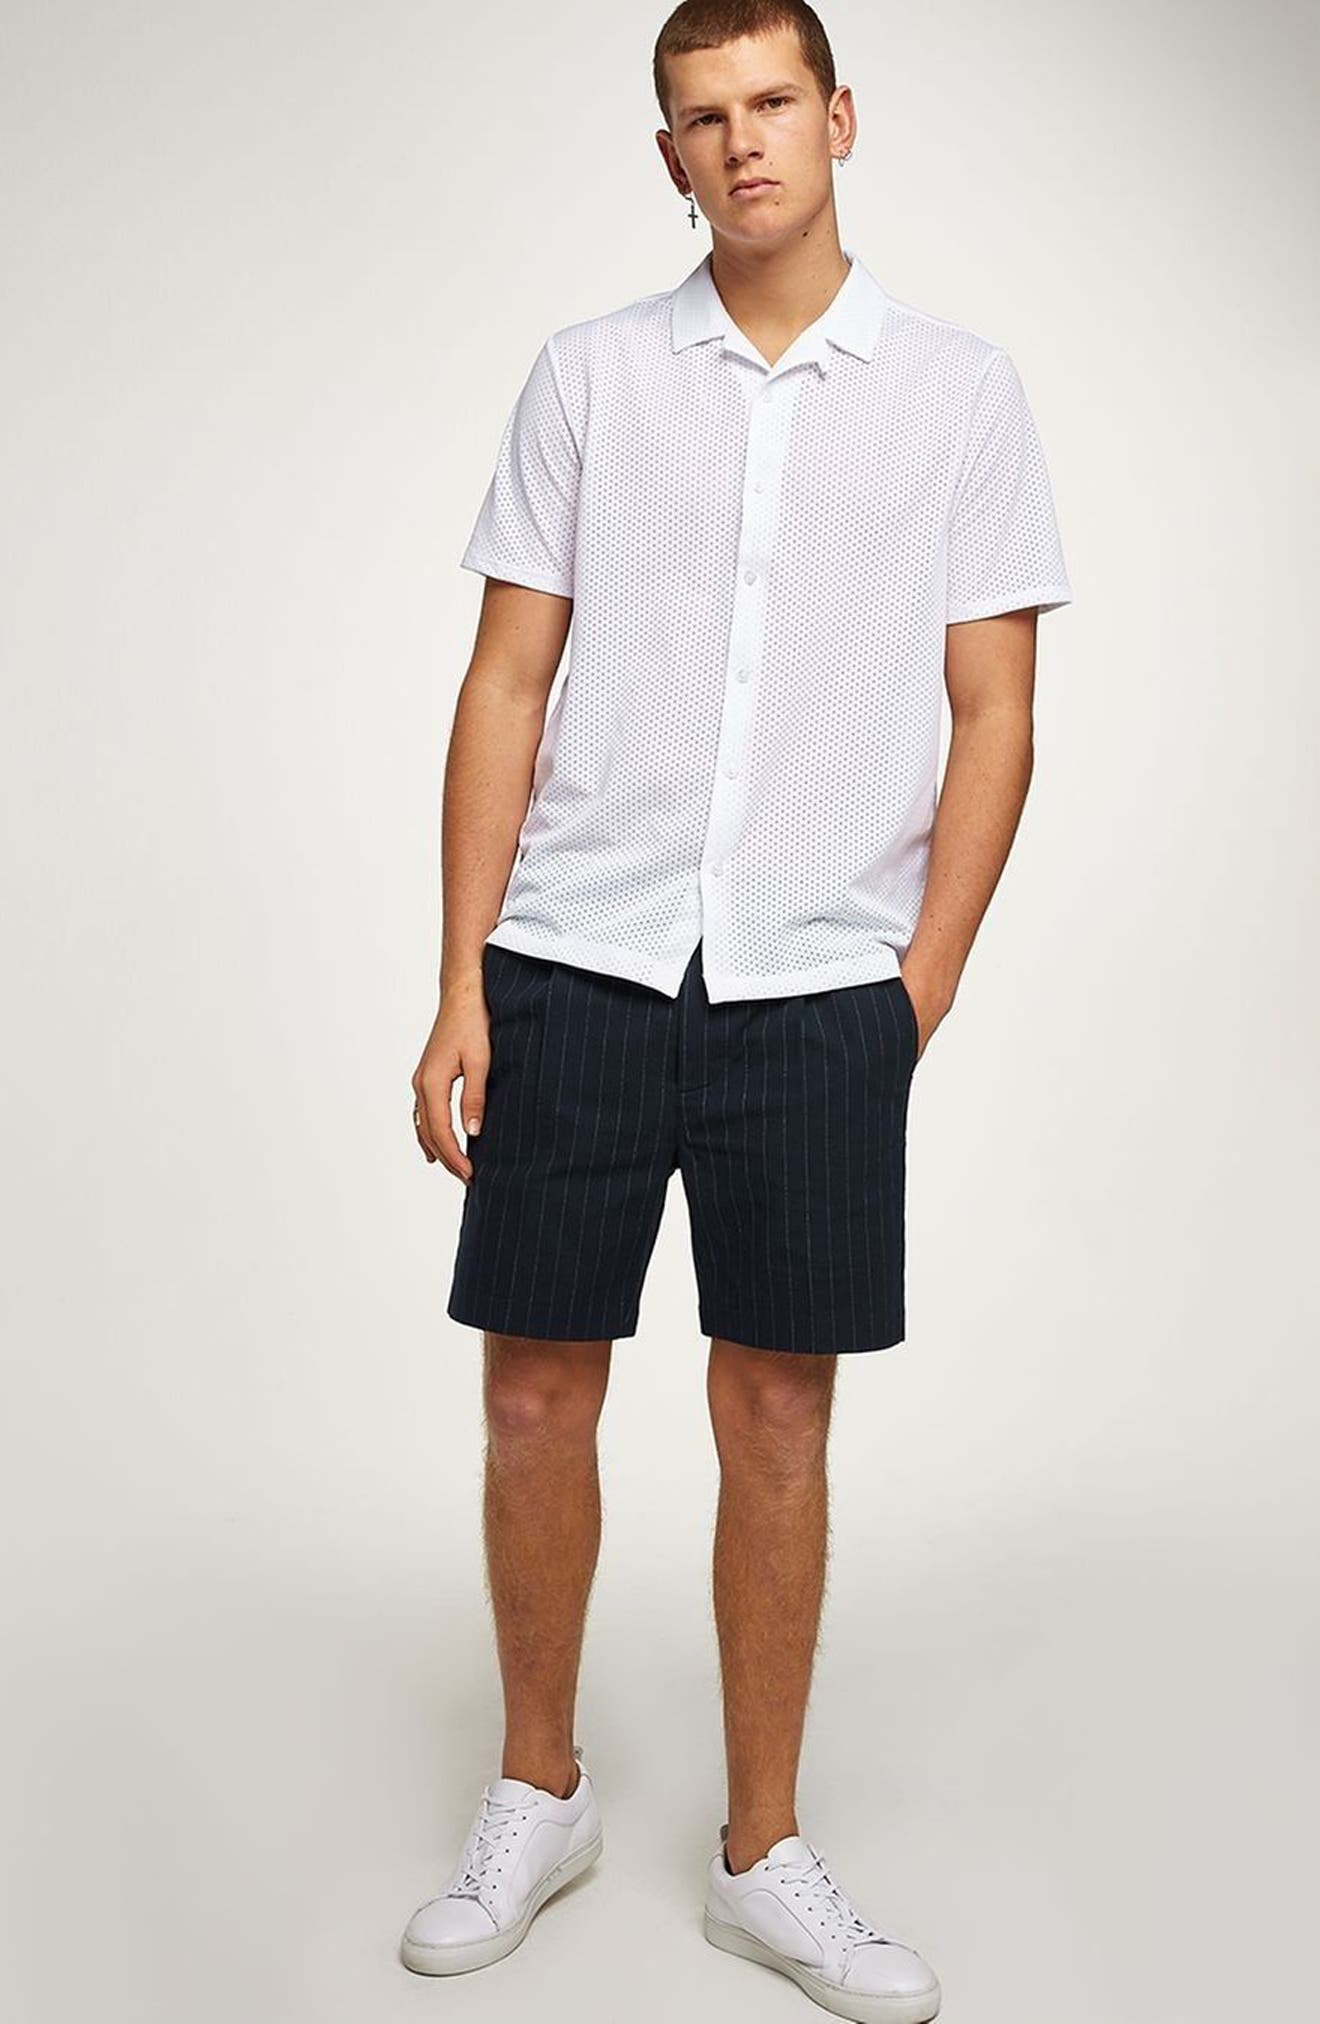 Pinstripe Shorts,                             Alternate thumbnail 4, color,                             Navy Blue